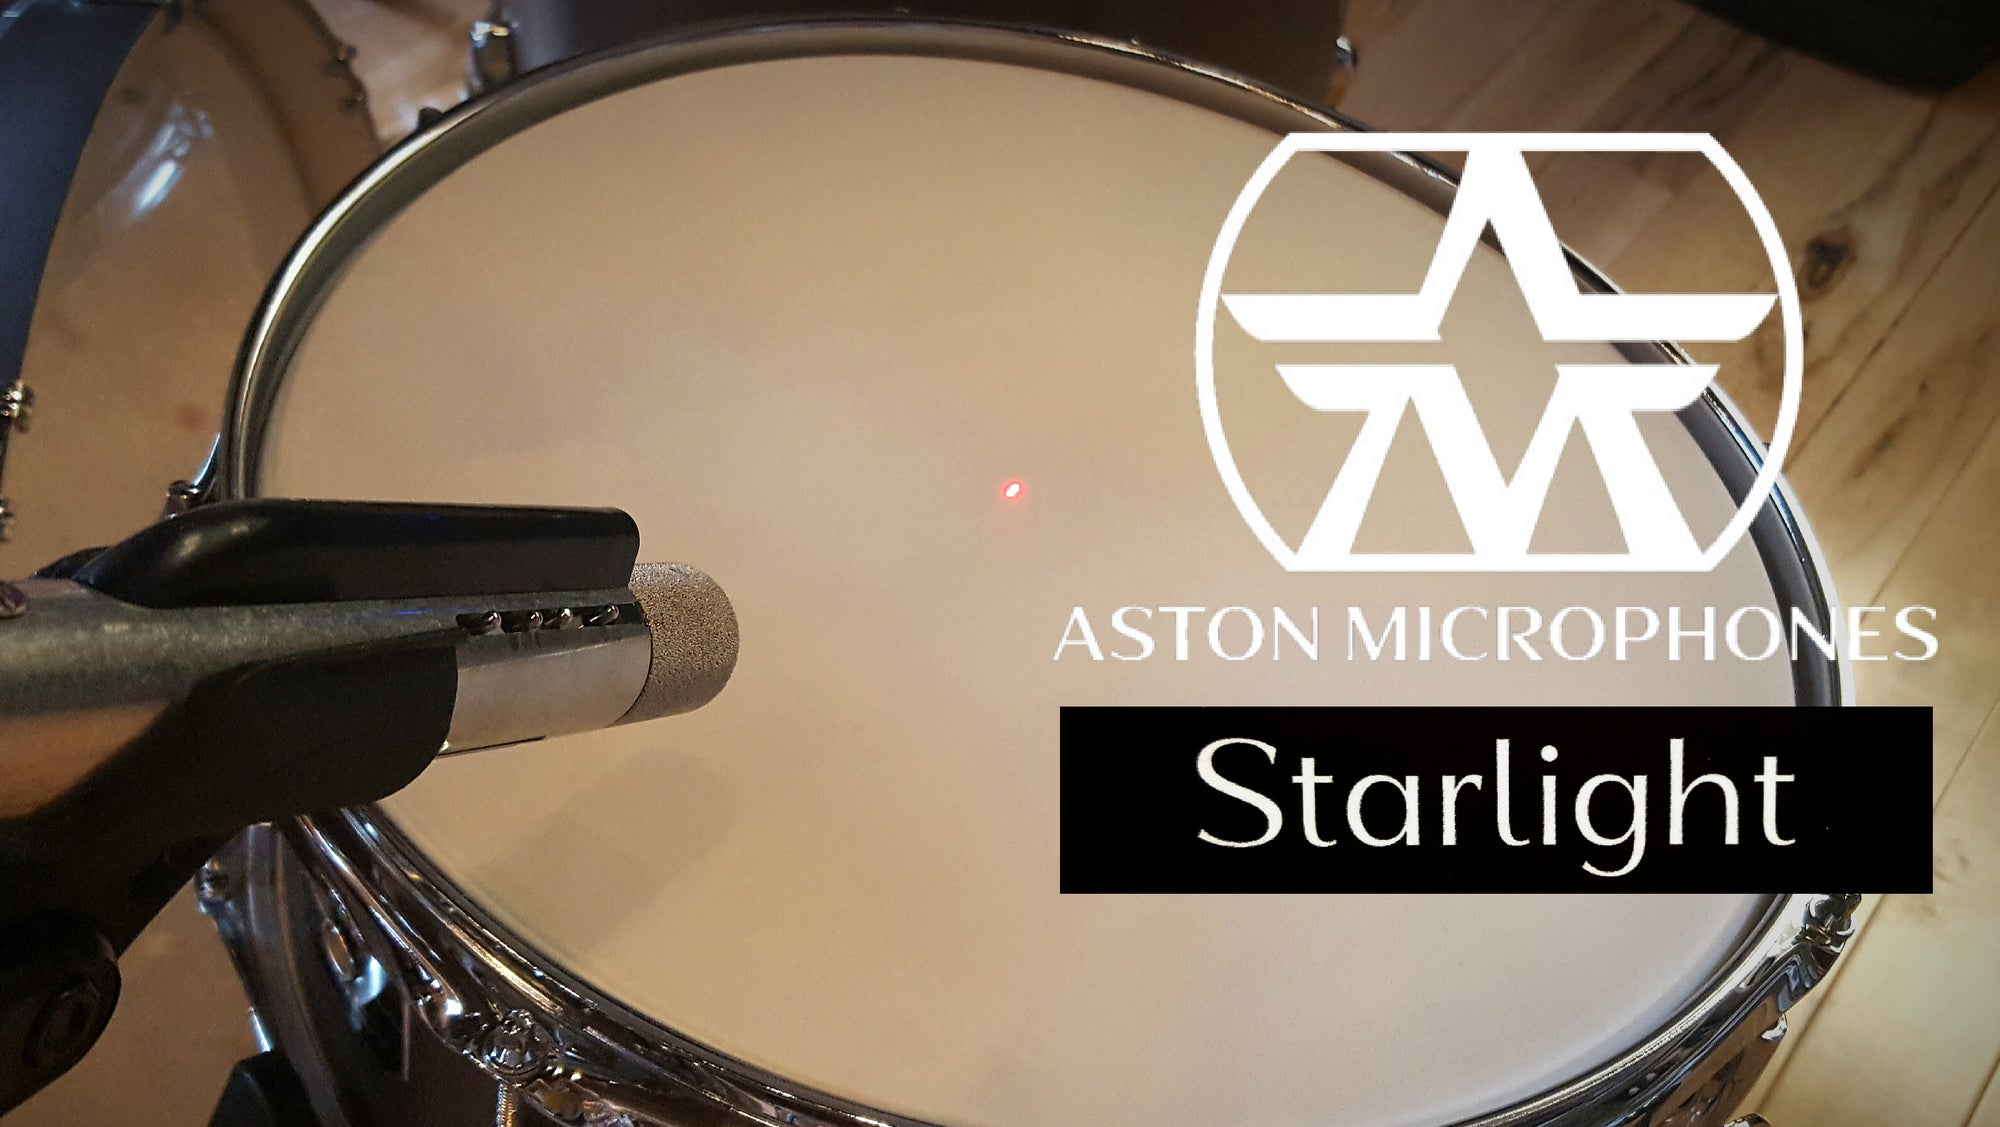 Aston Microphones Starlight Sound Samples